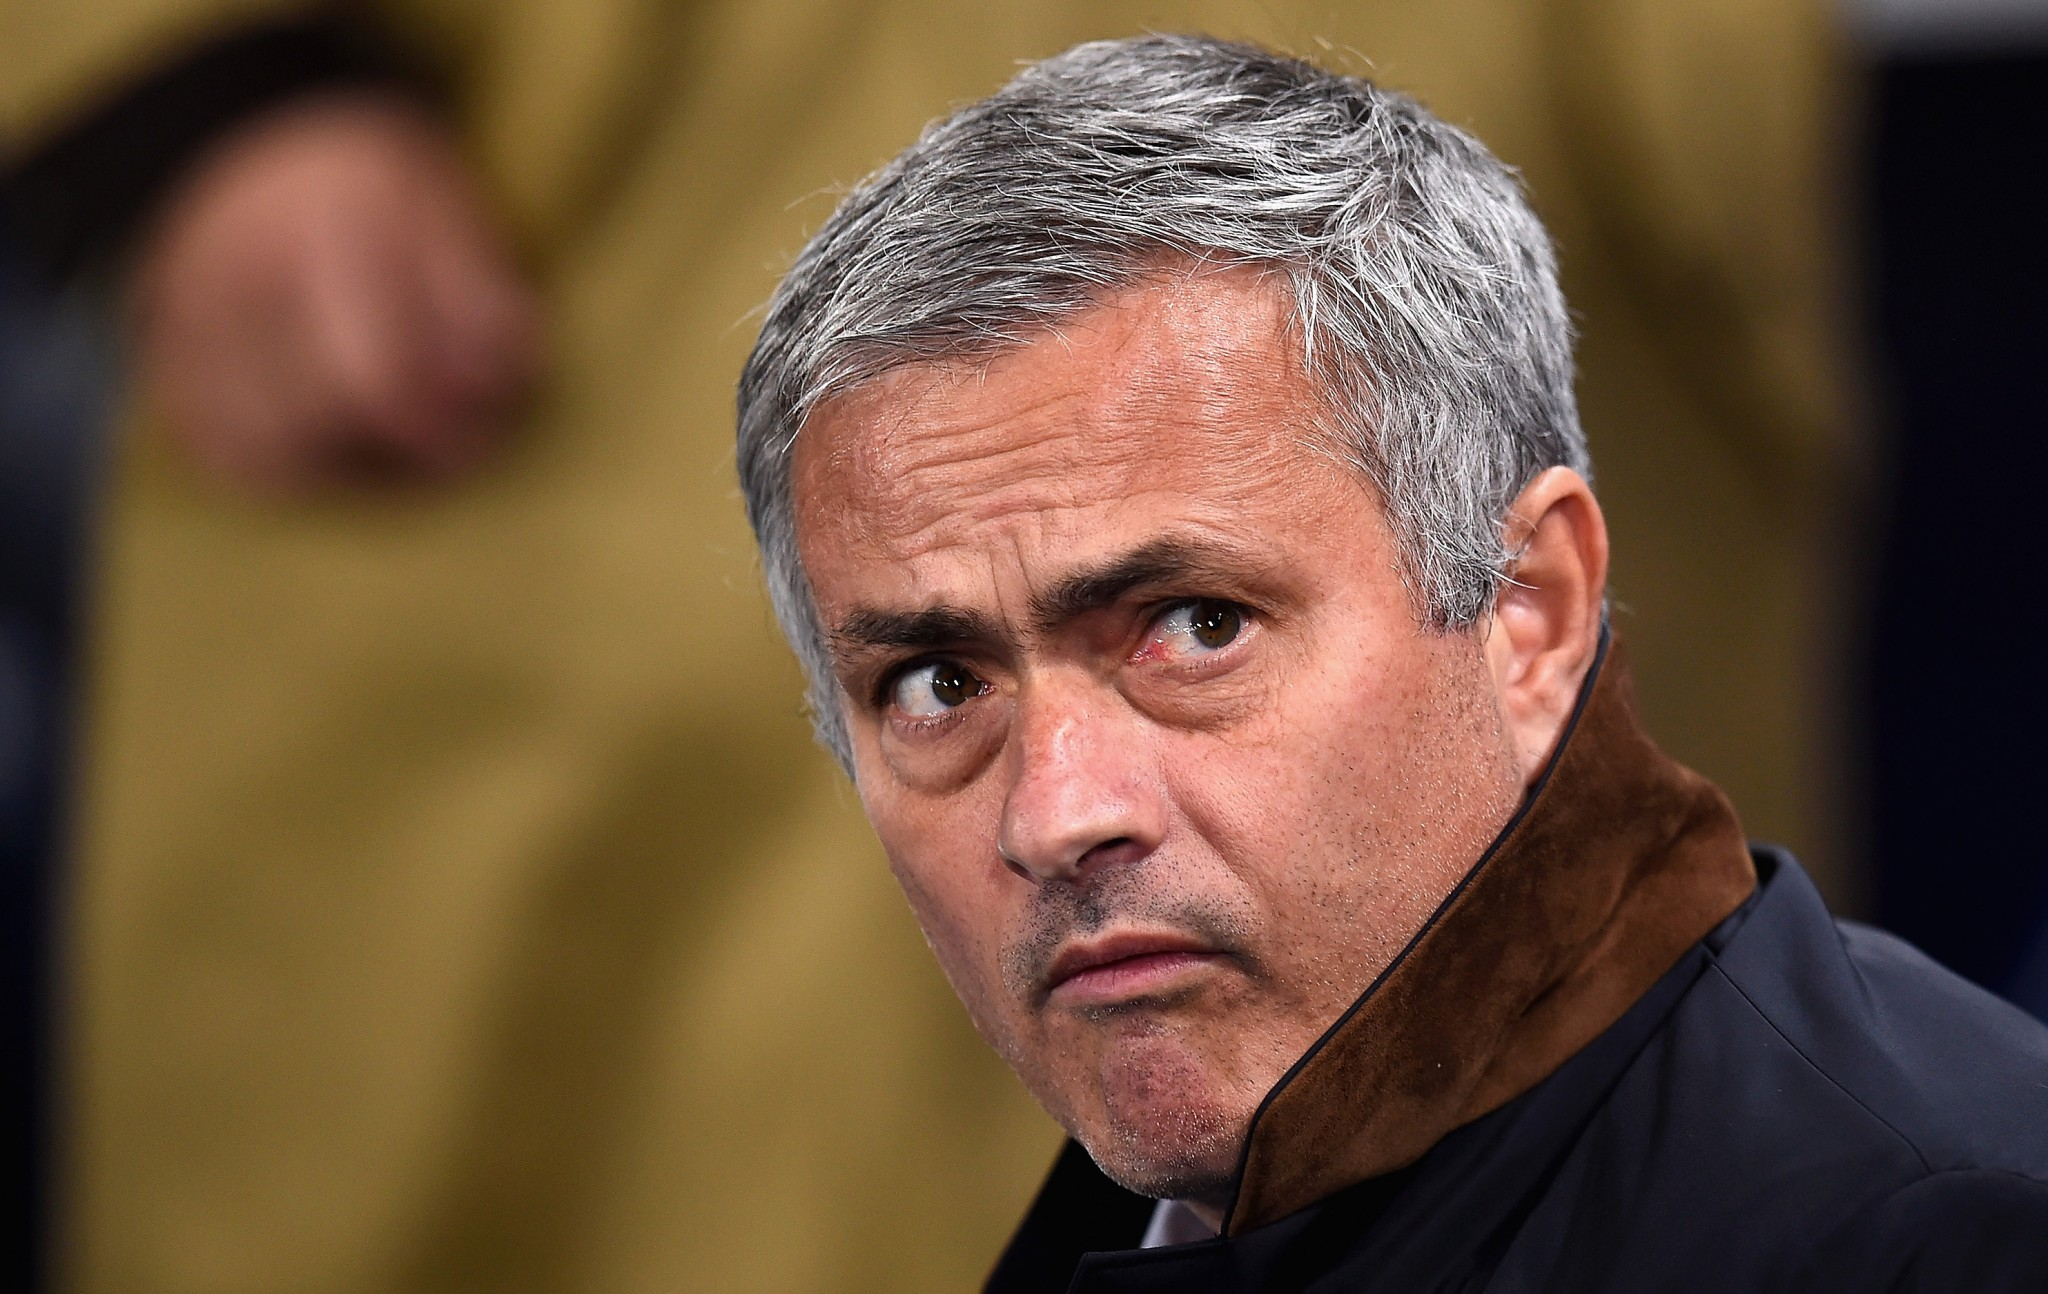 José Mourinho of Chelsea FC has endured a bad run of results